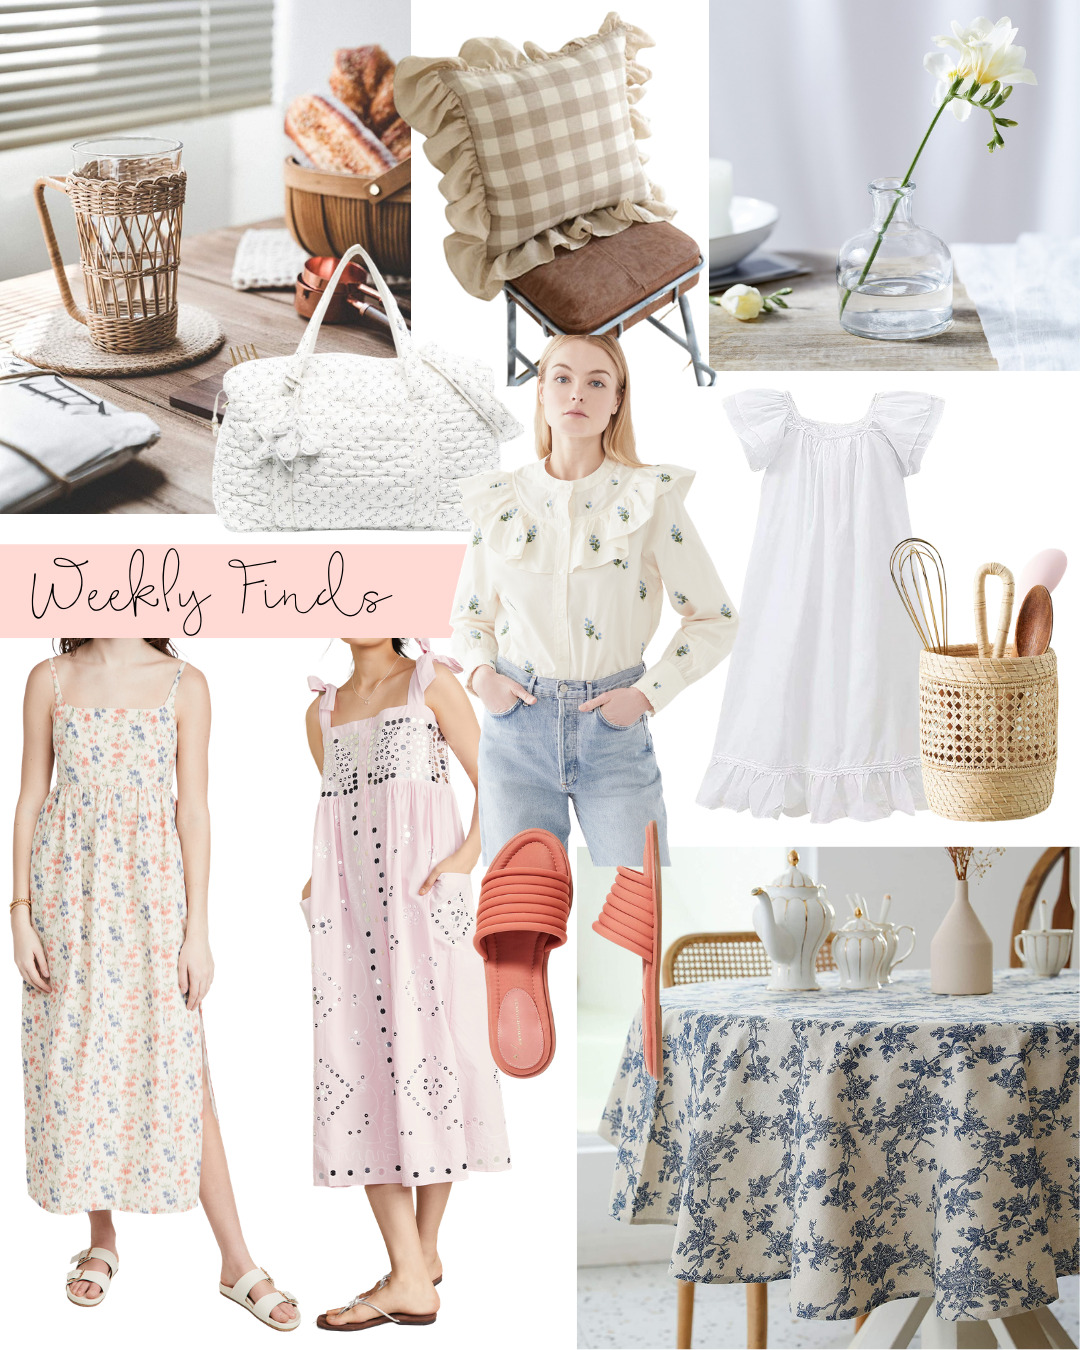 Weekly Finds + A Few Recent Spring Home Picks